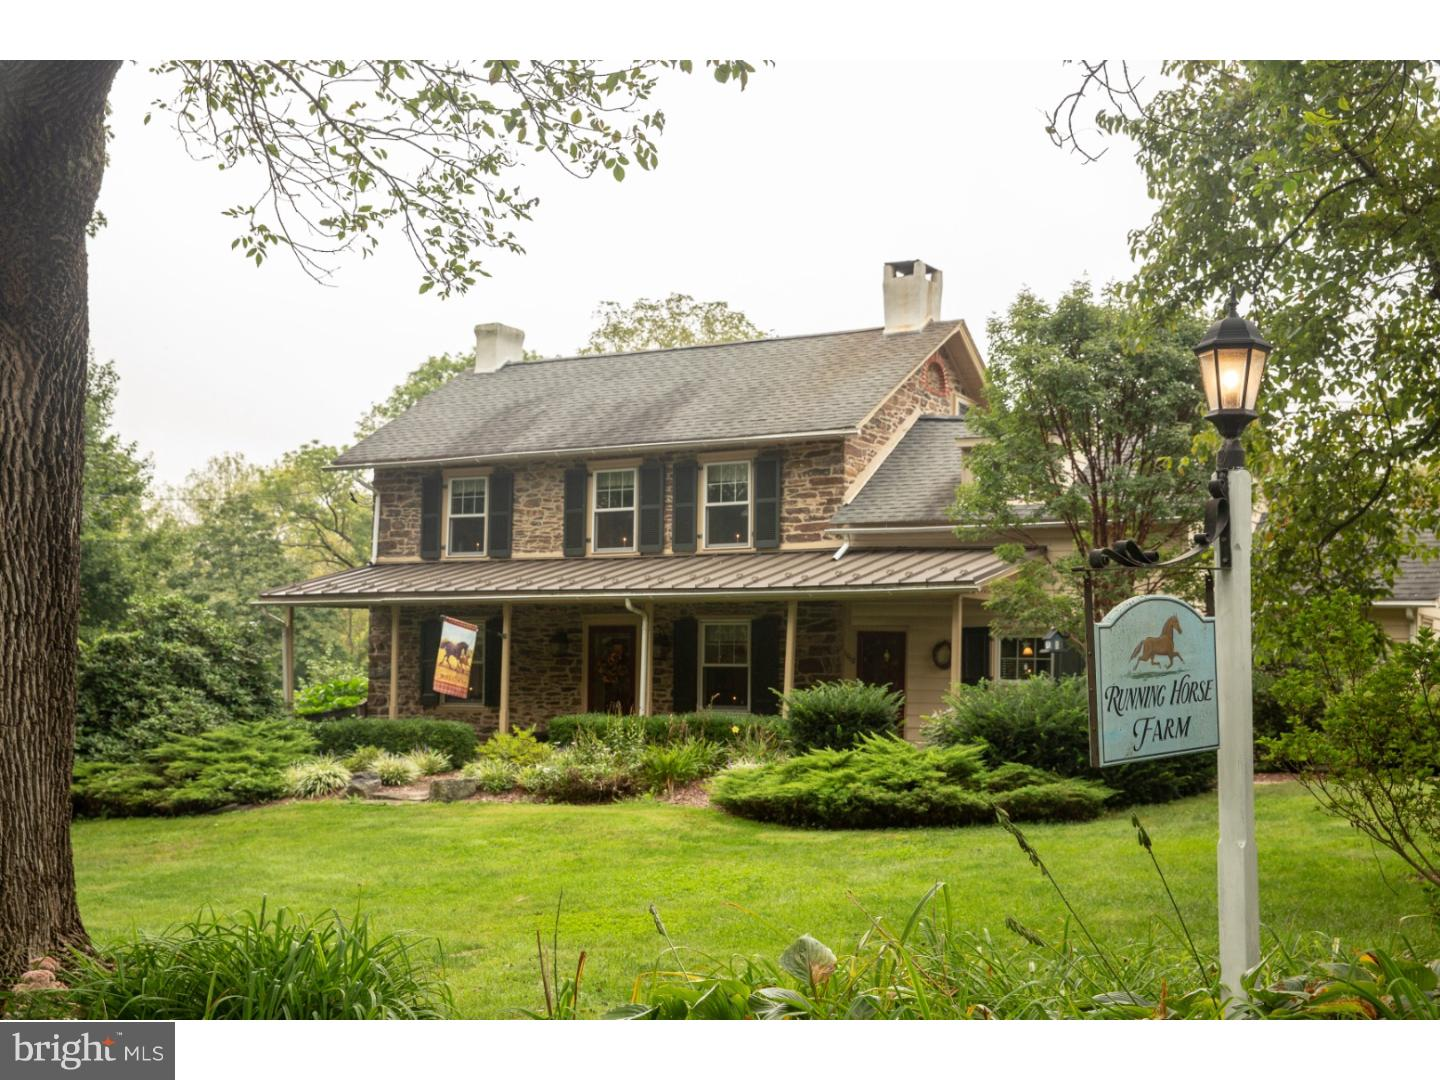 1018 FOREST ROAD, PERKASIE, PA 18944